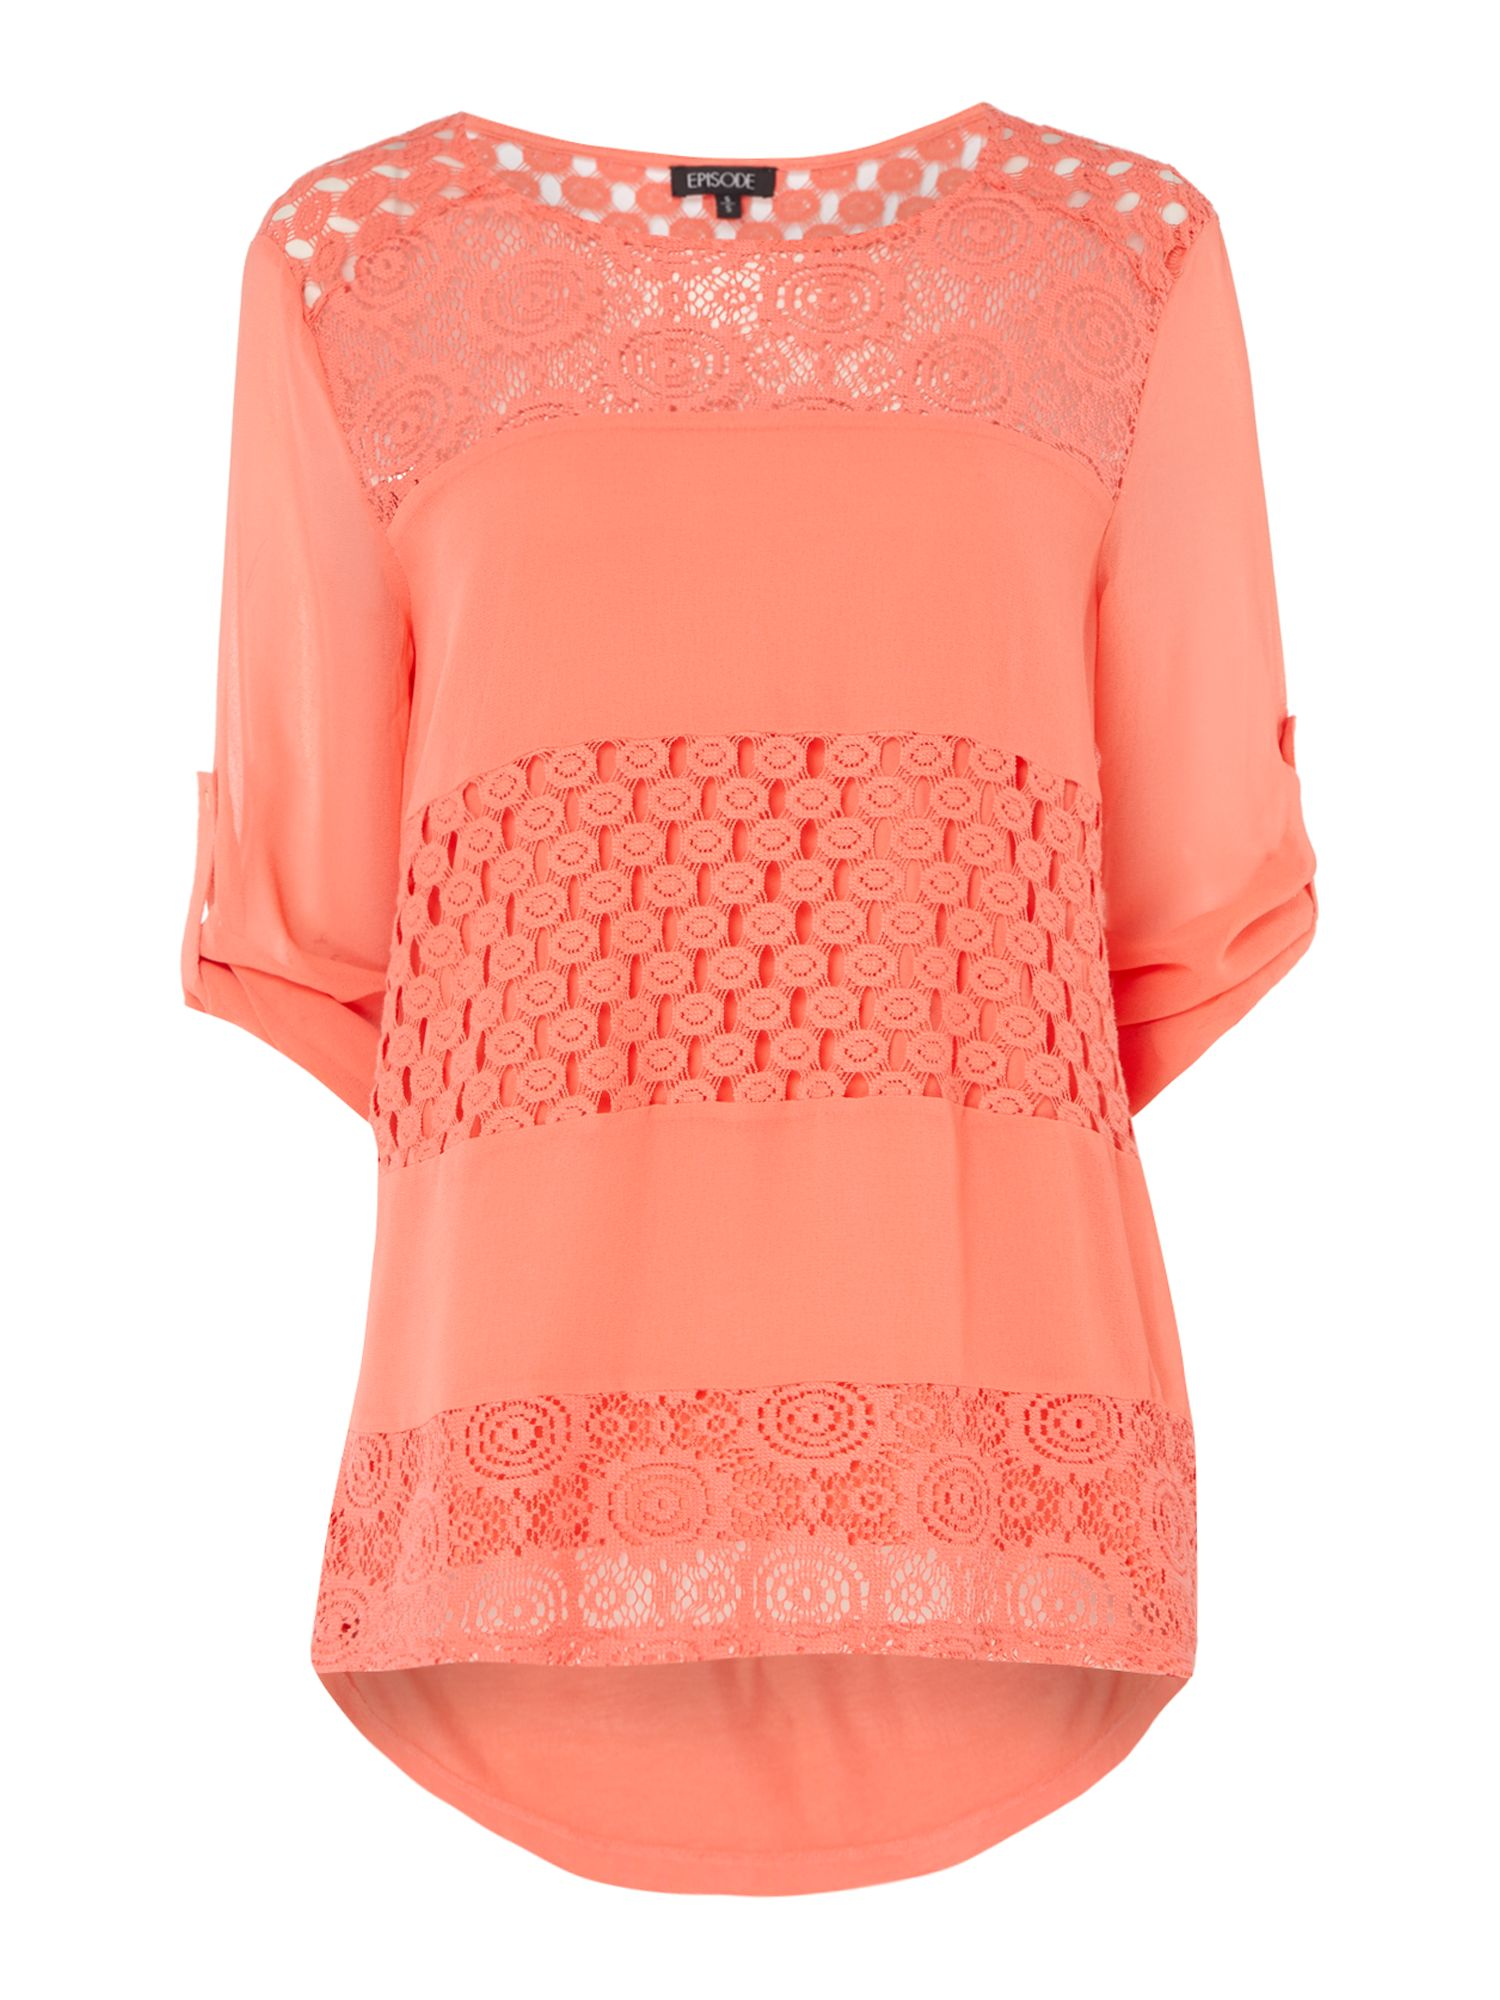 Episode Episode Lace panel top, Rose